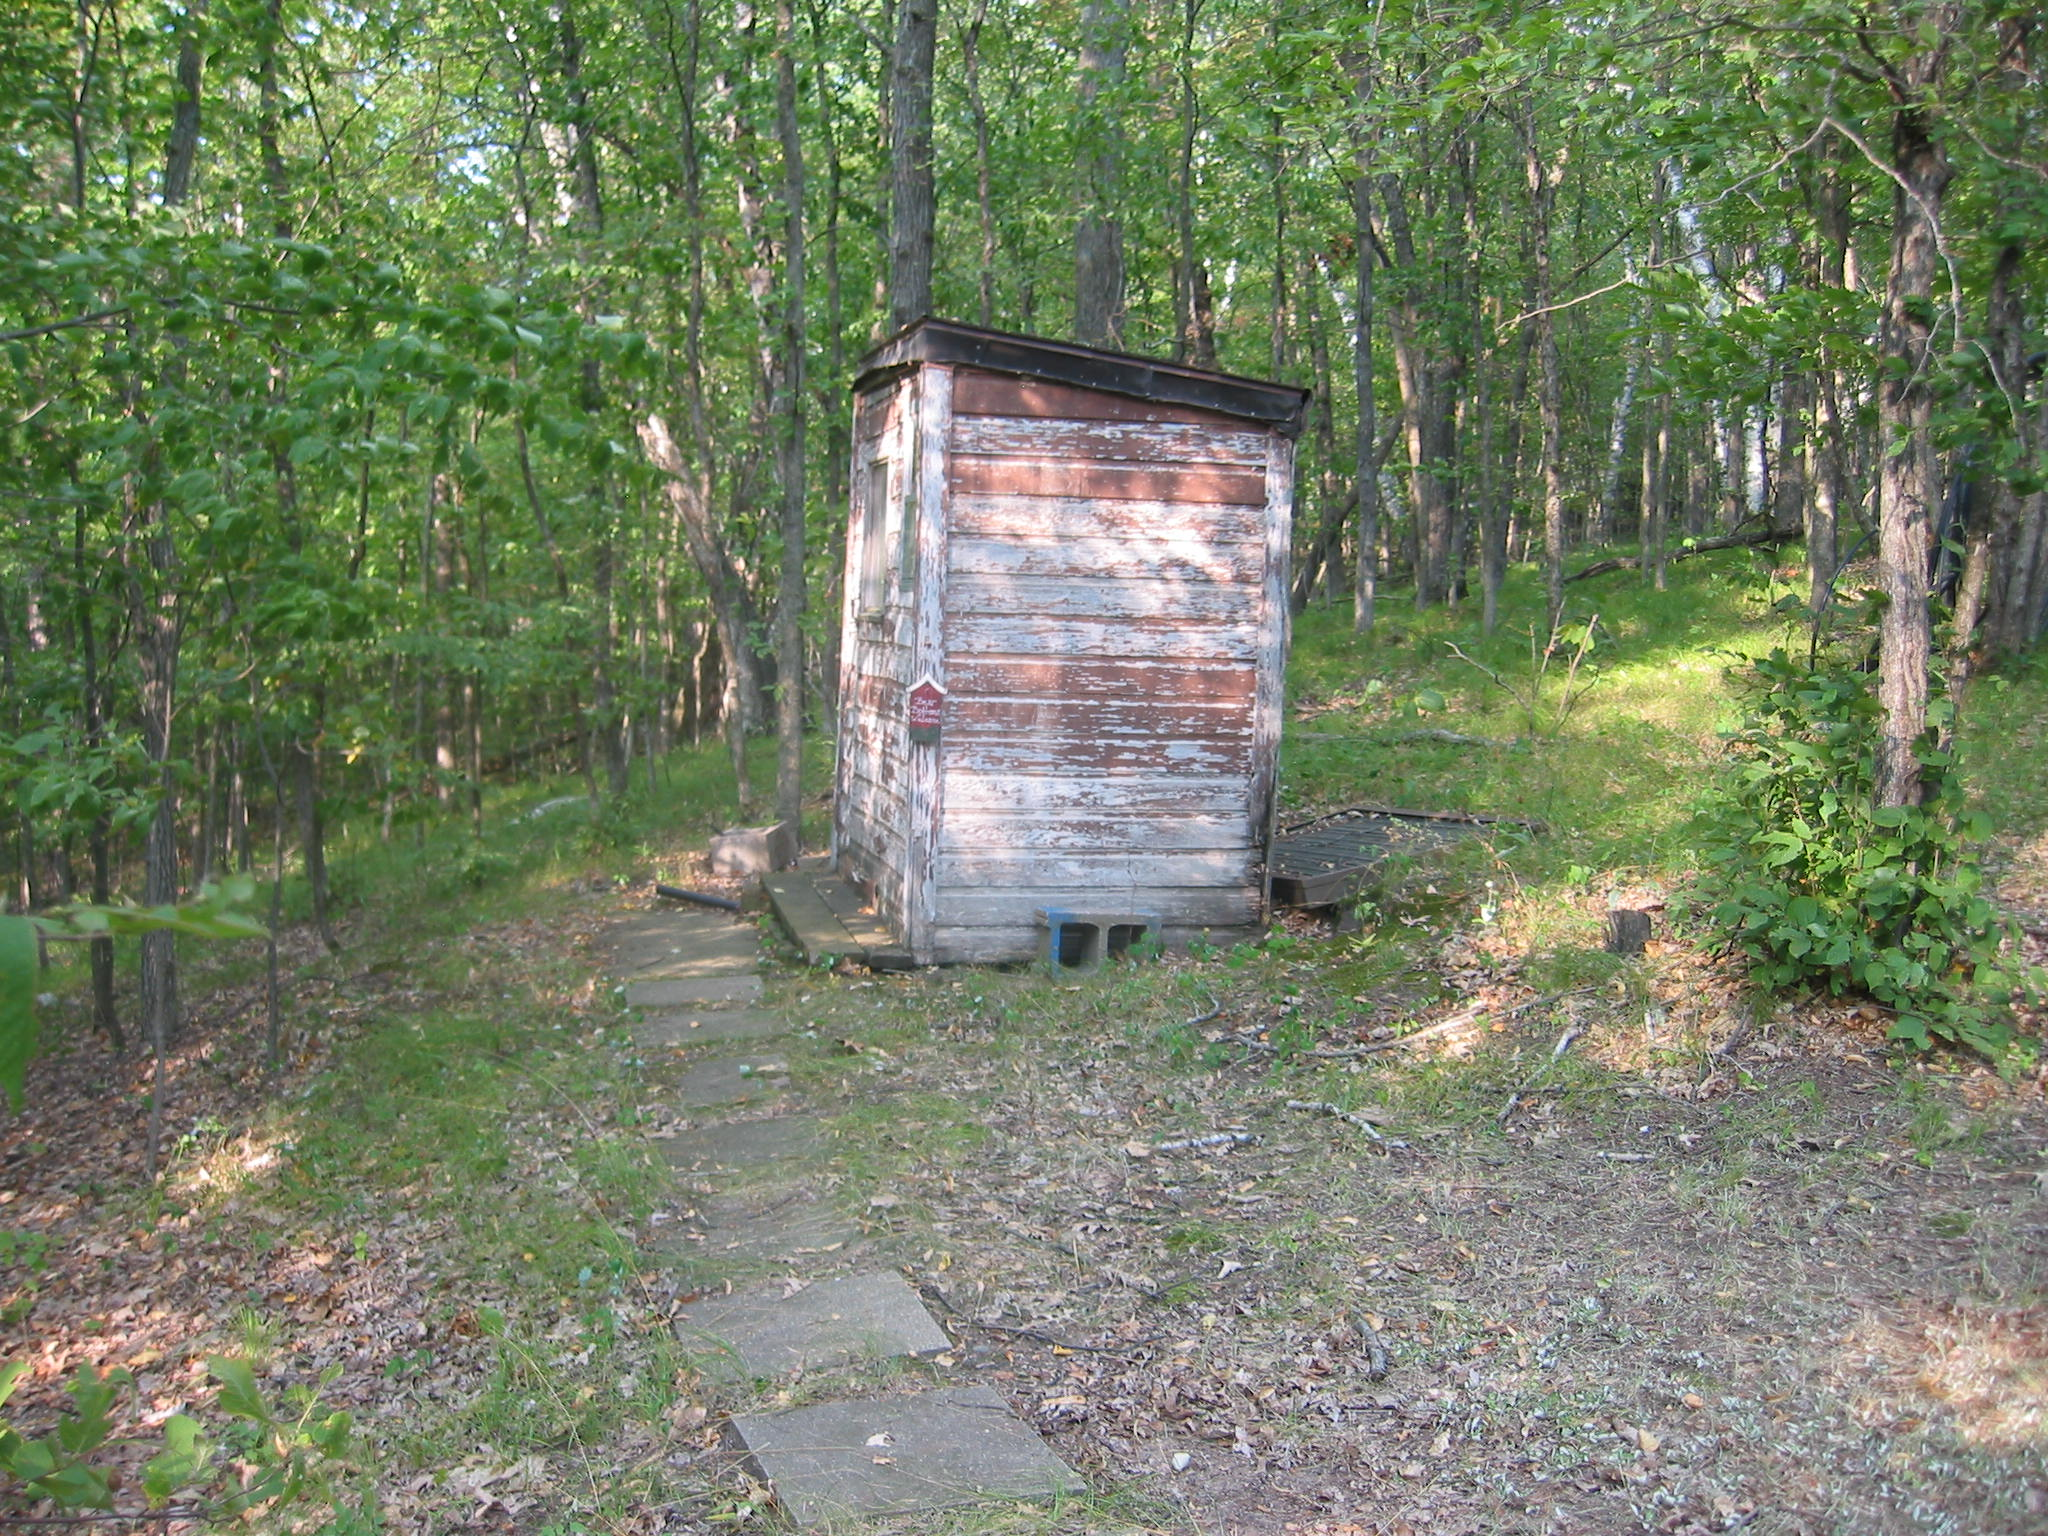 The World's Nicest Outhouse